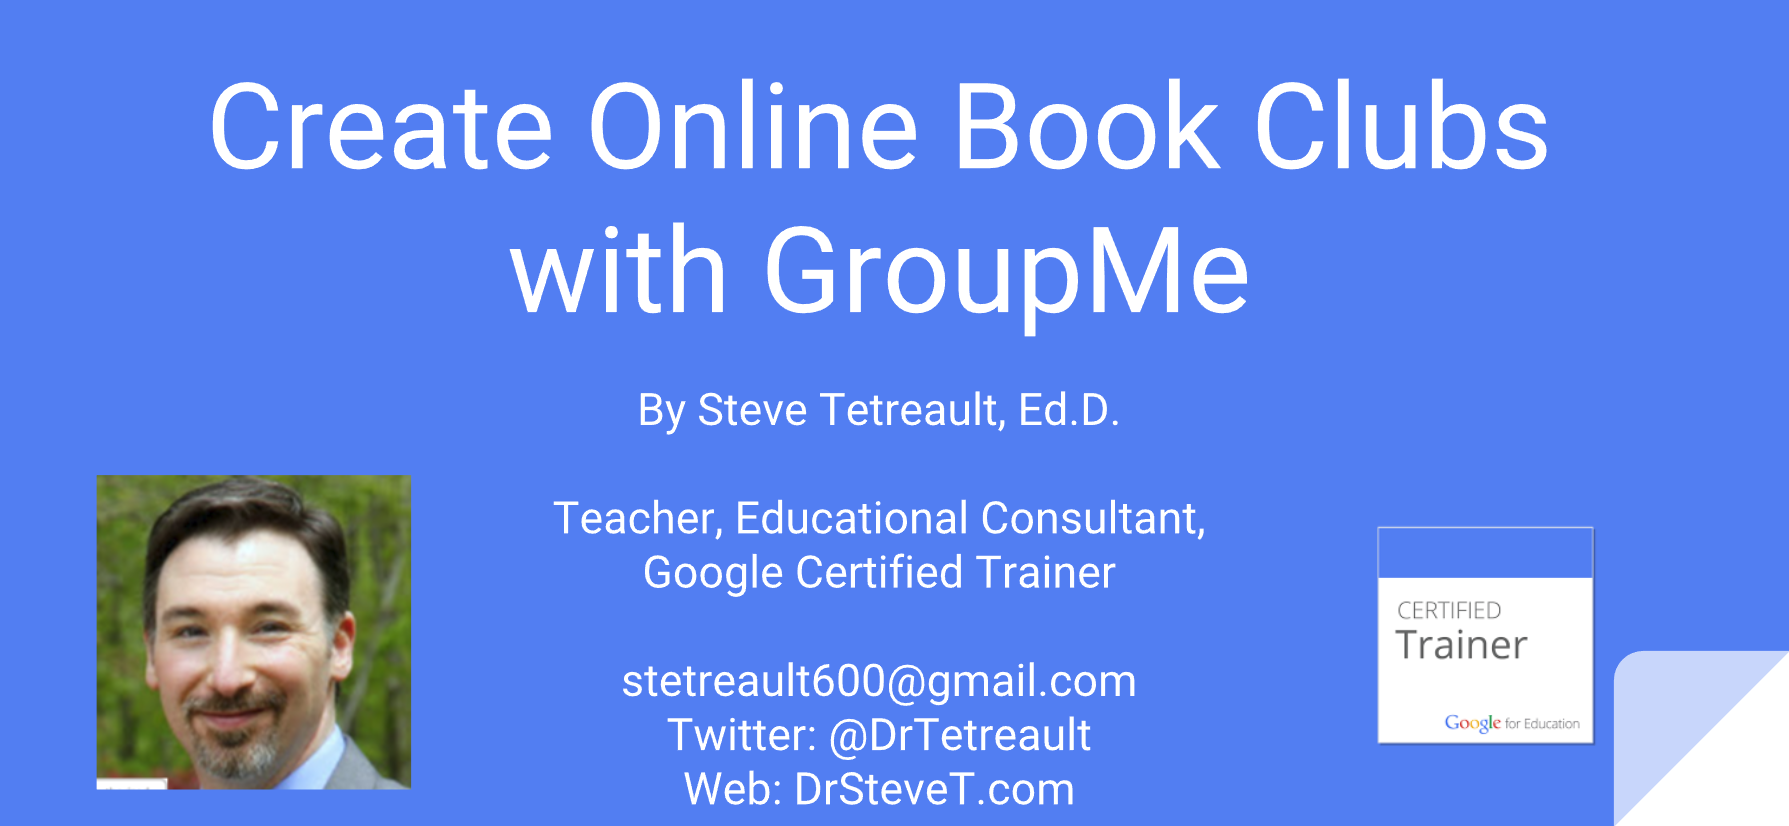 Slideshow: Create Online Book Clubs with GroupMe